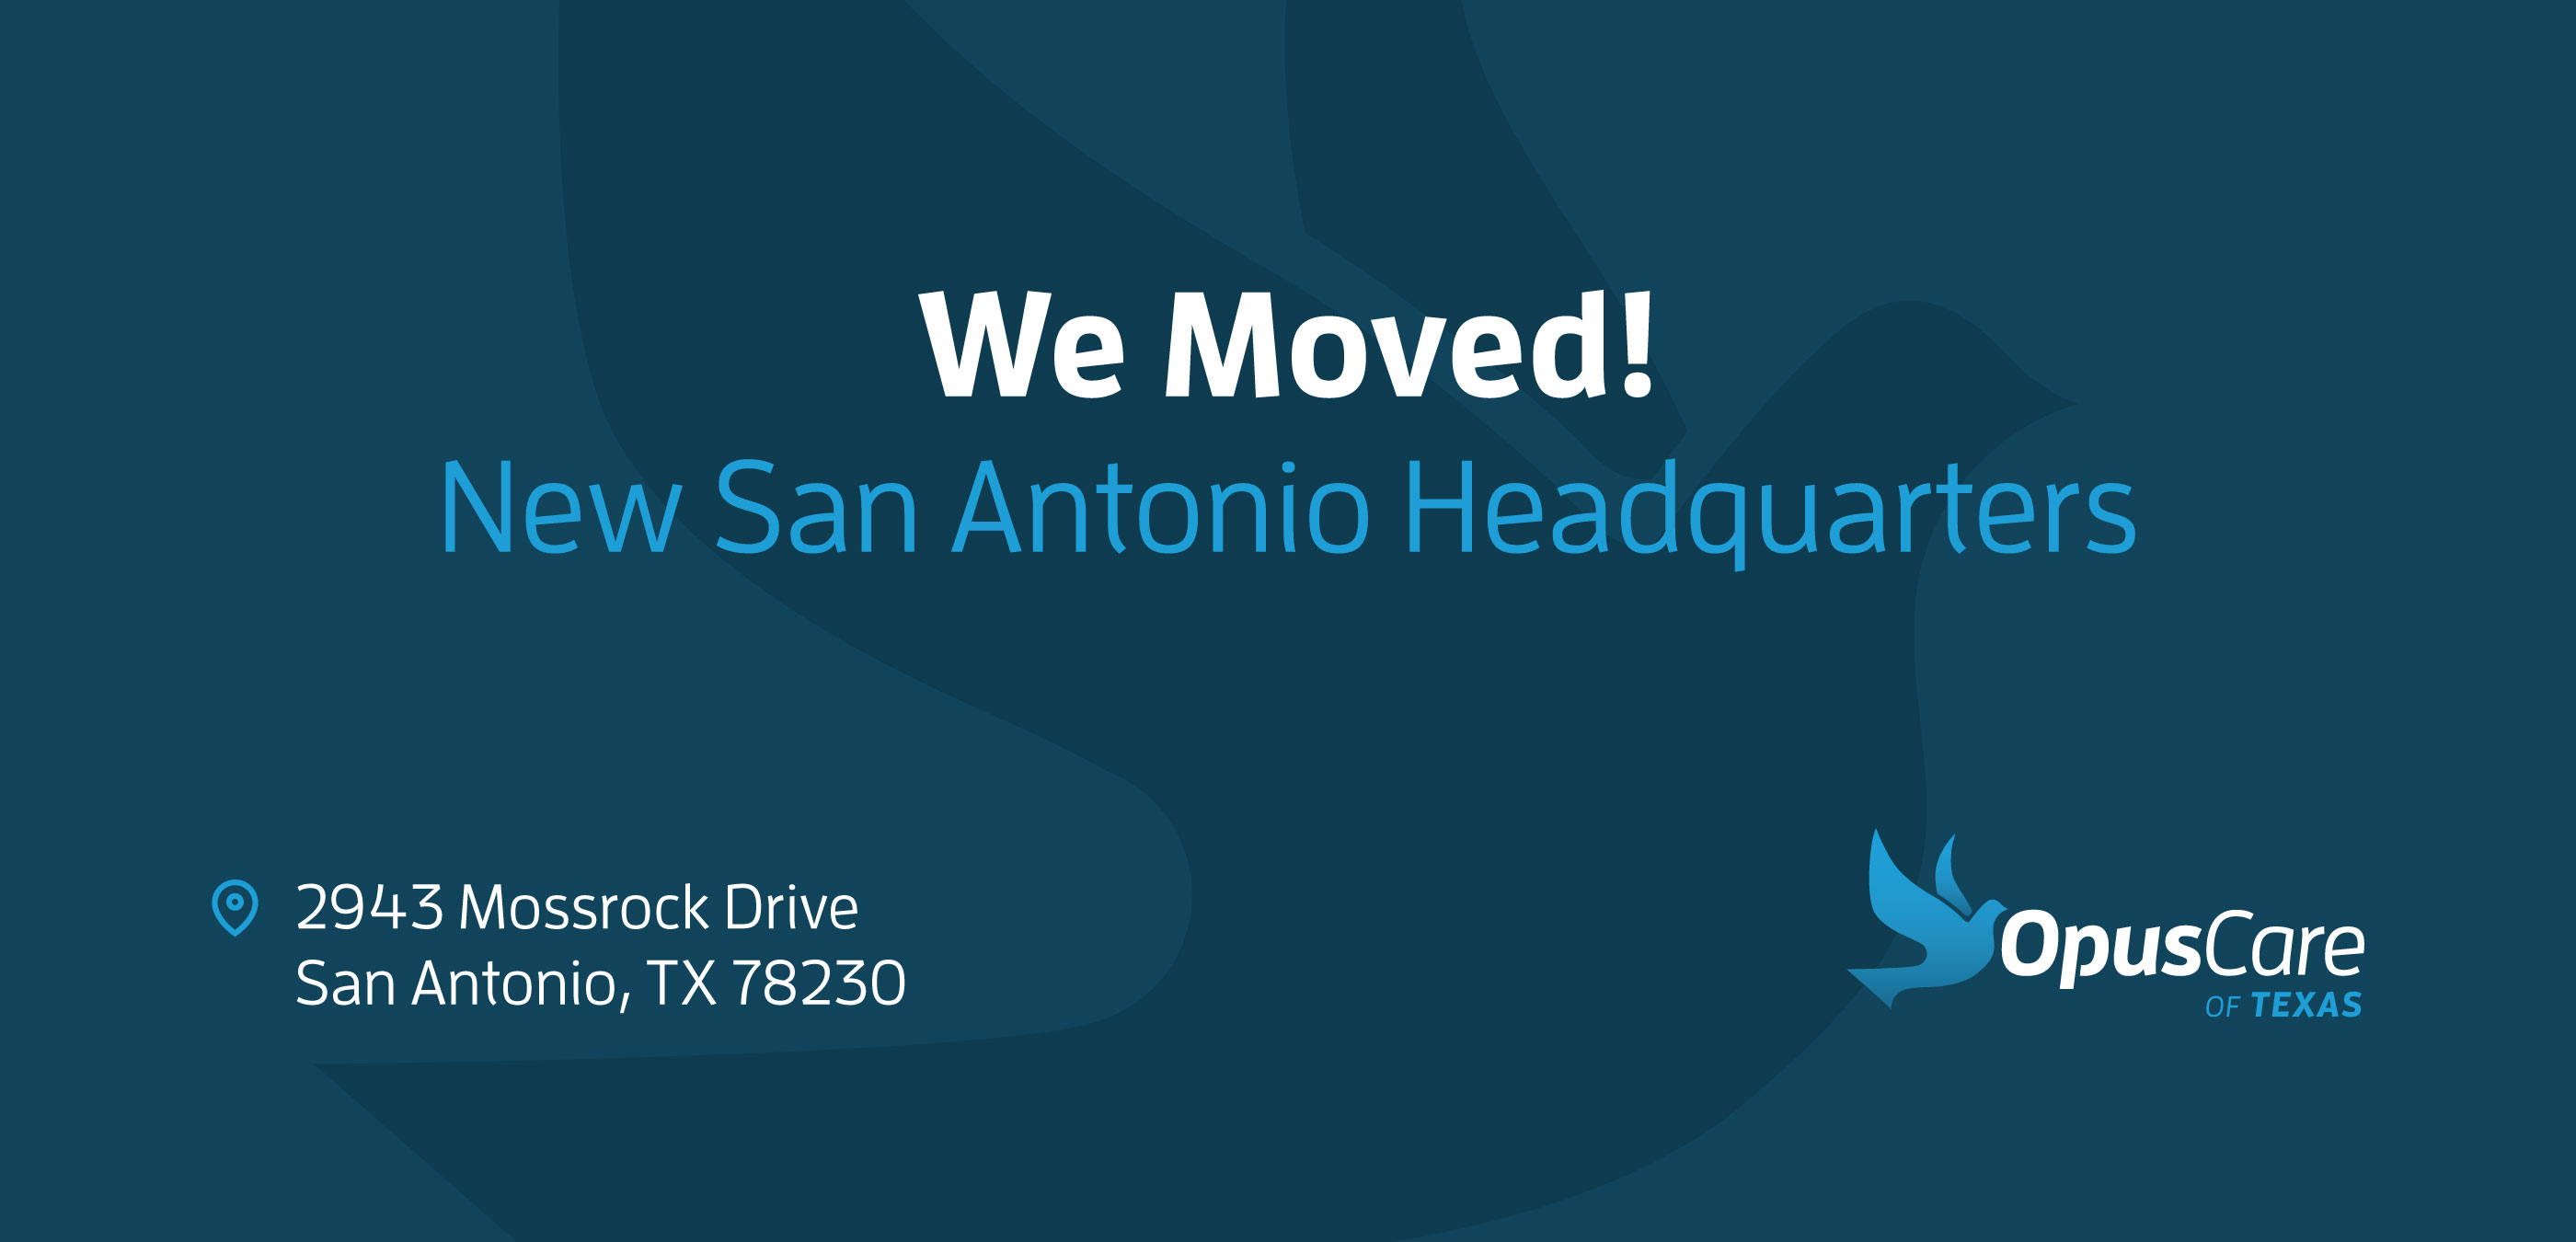 Coming Soon -- New San Antonio HeaderQuarters -- 2943 Mossrock Drive, San Antonio, TX 78230